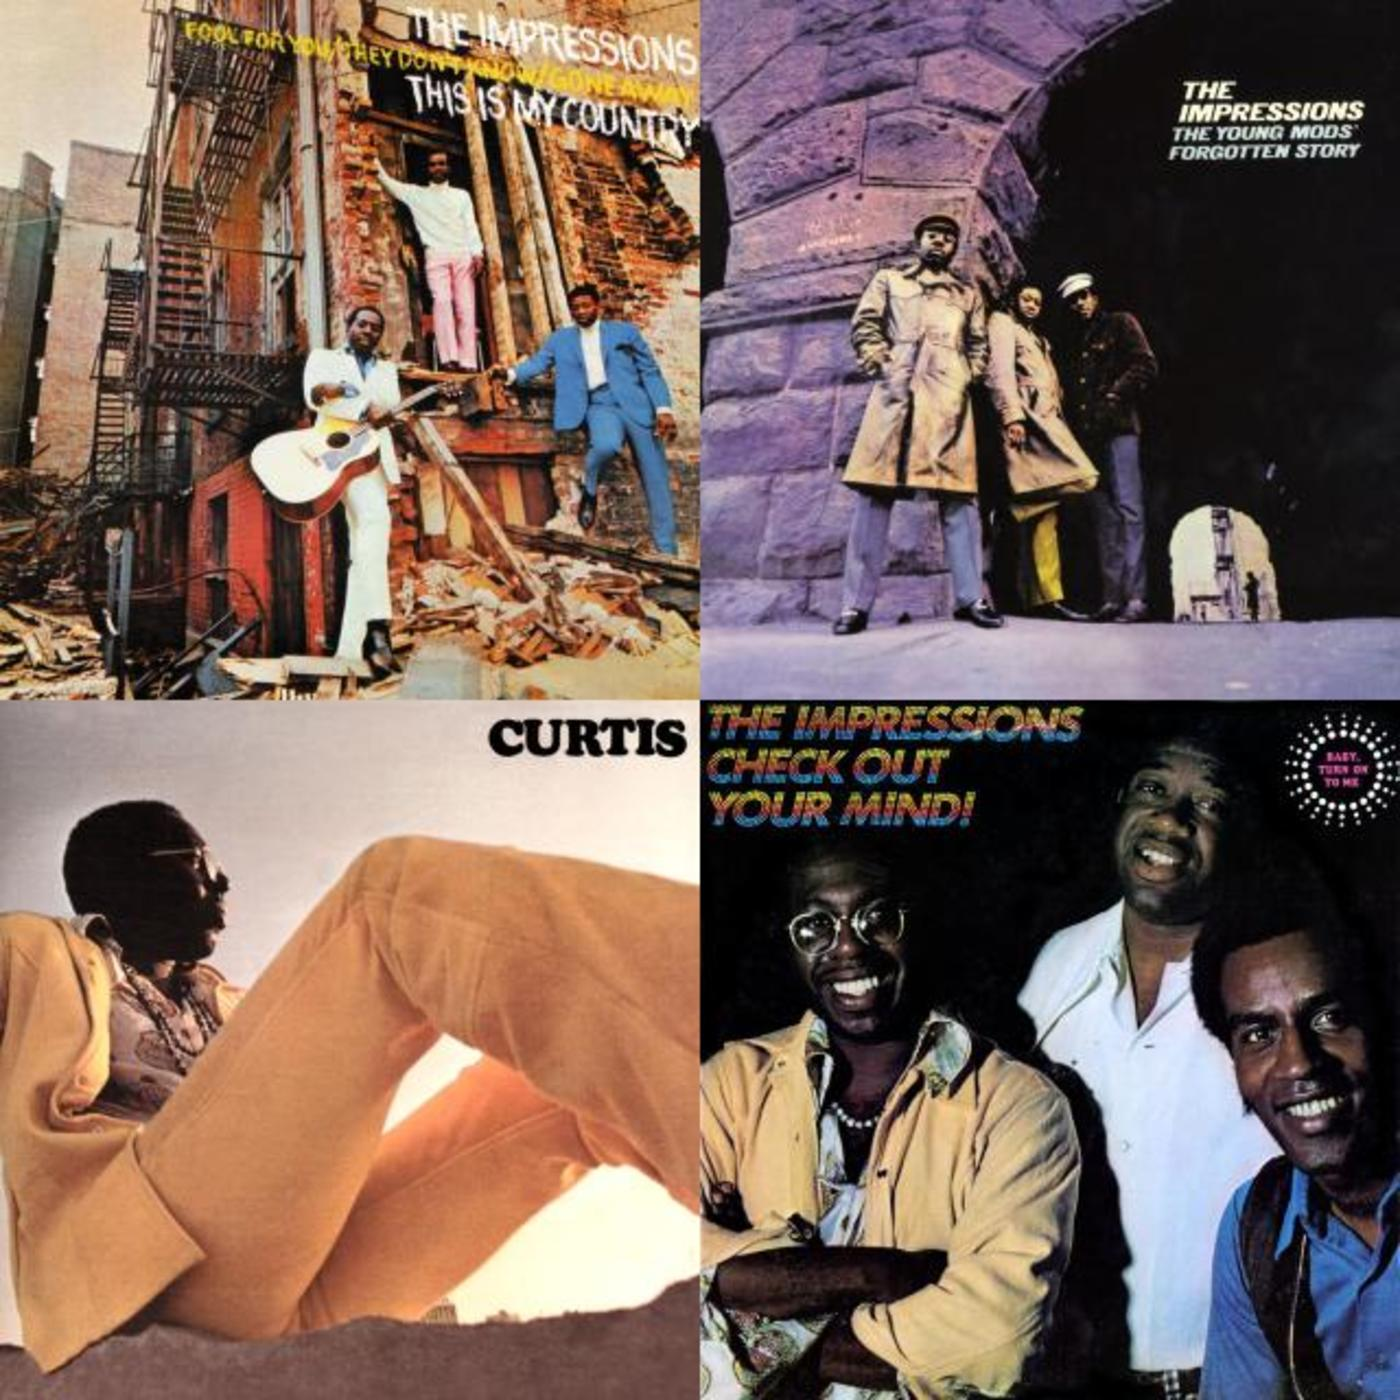 People Get Ready: It's A Curtis Mayfield Playlist - The Impressions, Curtis Mayfield